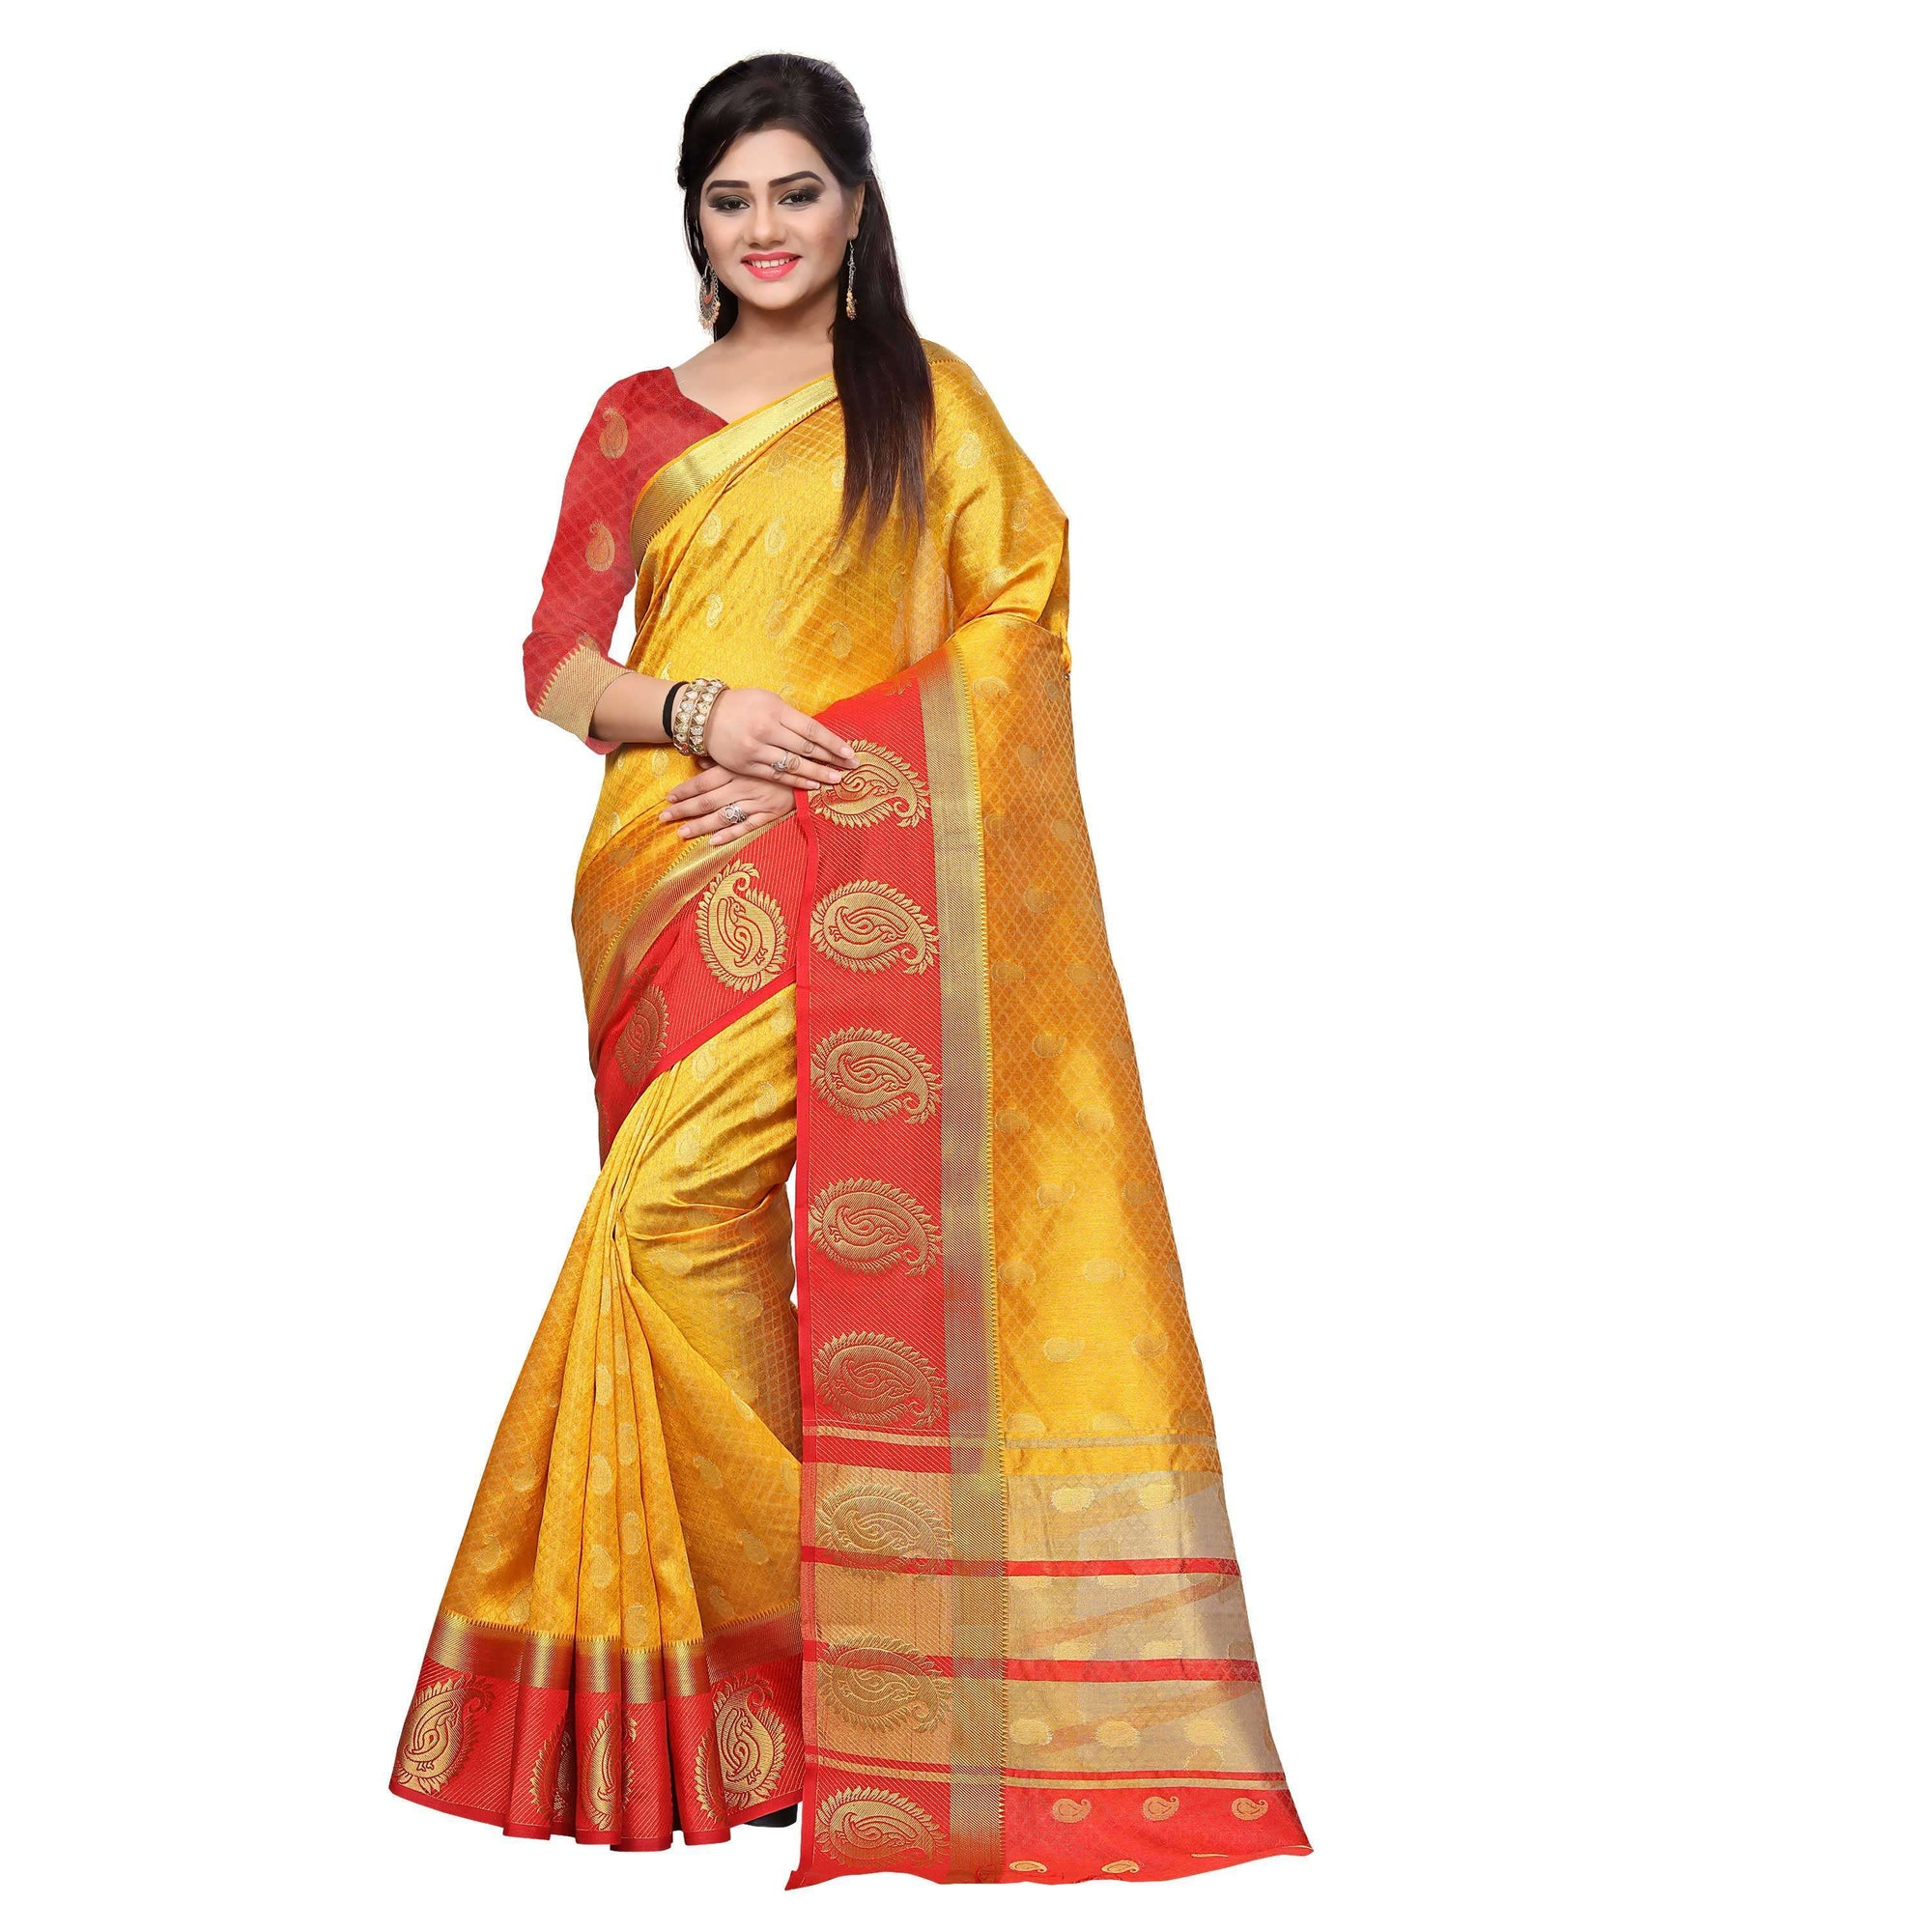 arars kanjivaram art silk saree with blouse saree colour mustard (328)